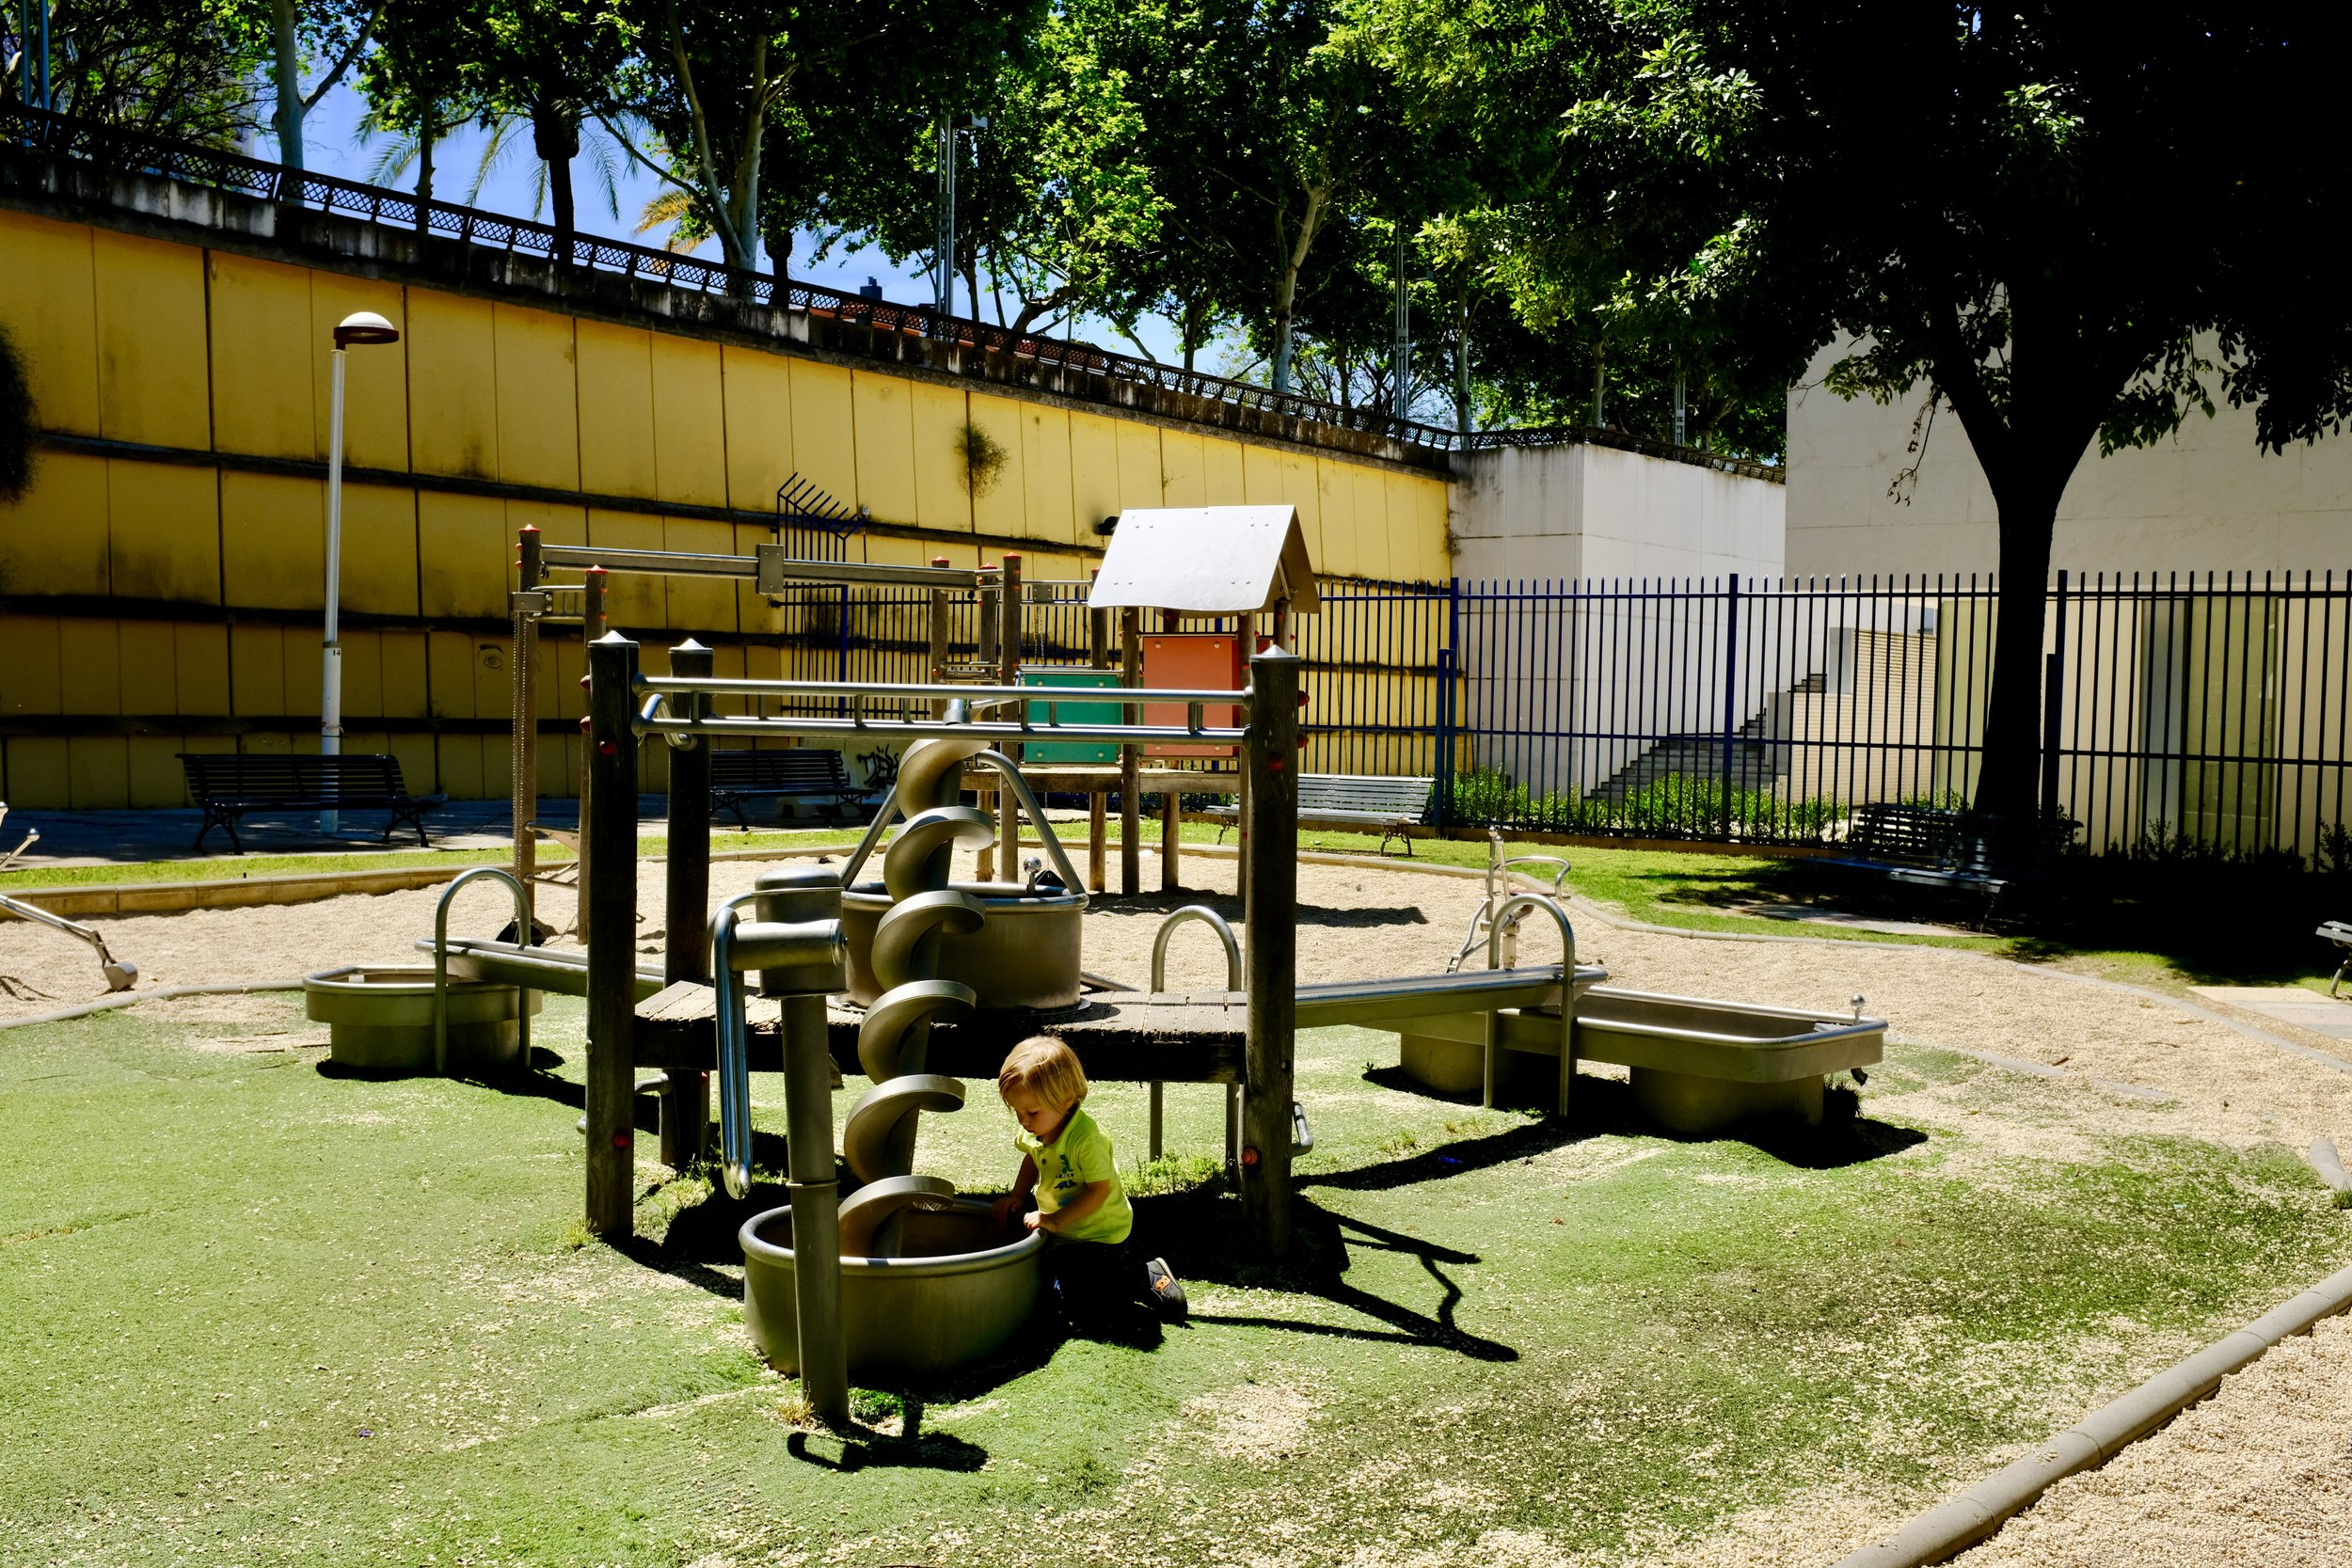 Pirate Boat Playground_City Nibbler_Seville